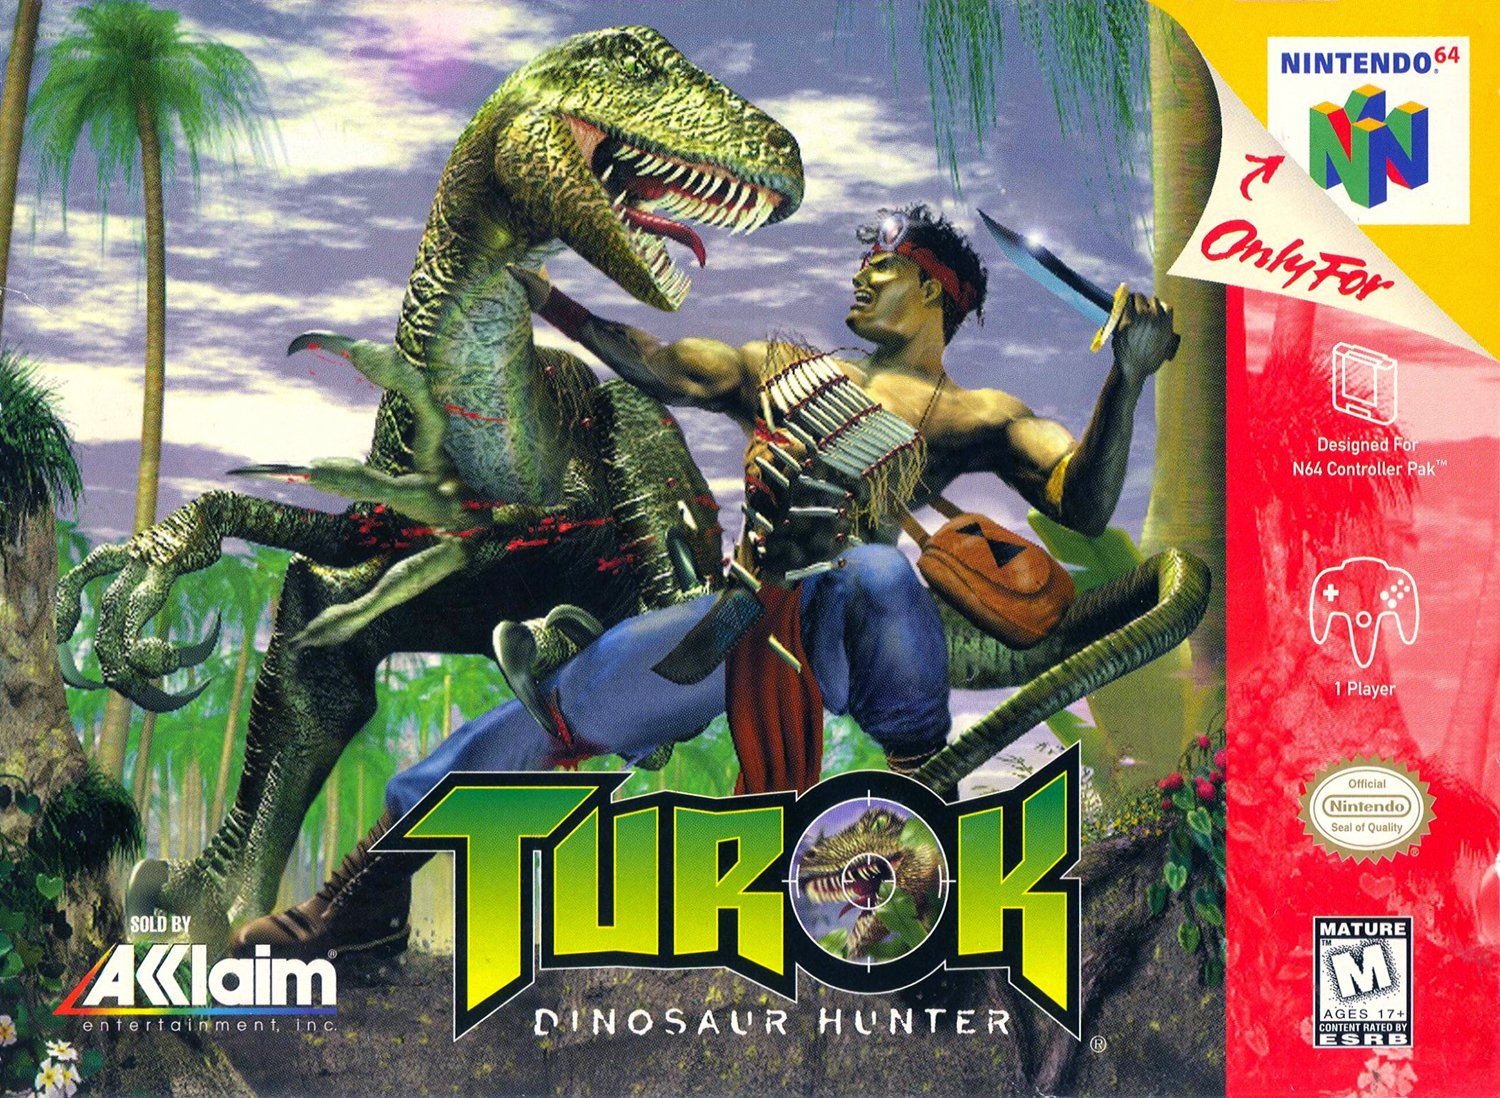 15 essential games we'd want on an N64 Classic console   JOE